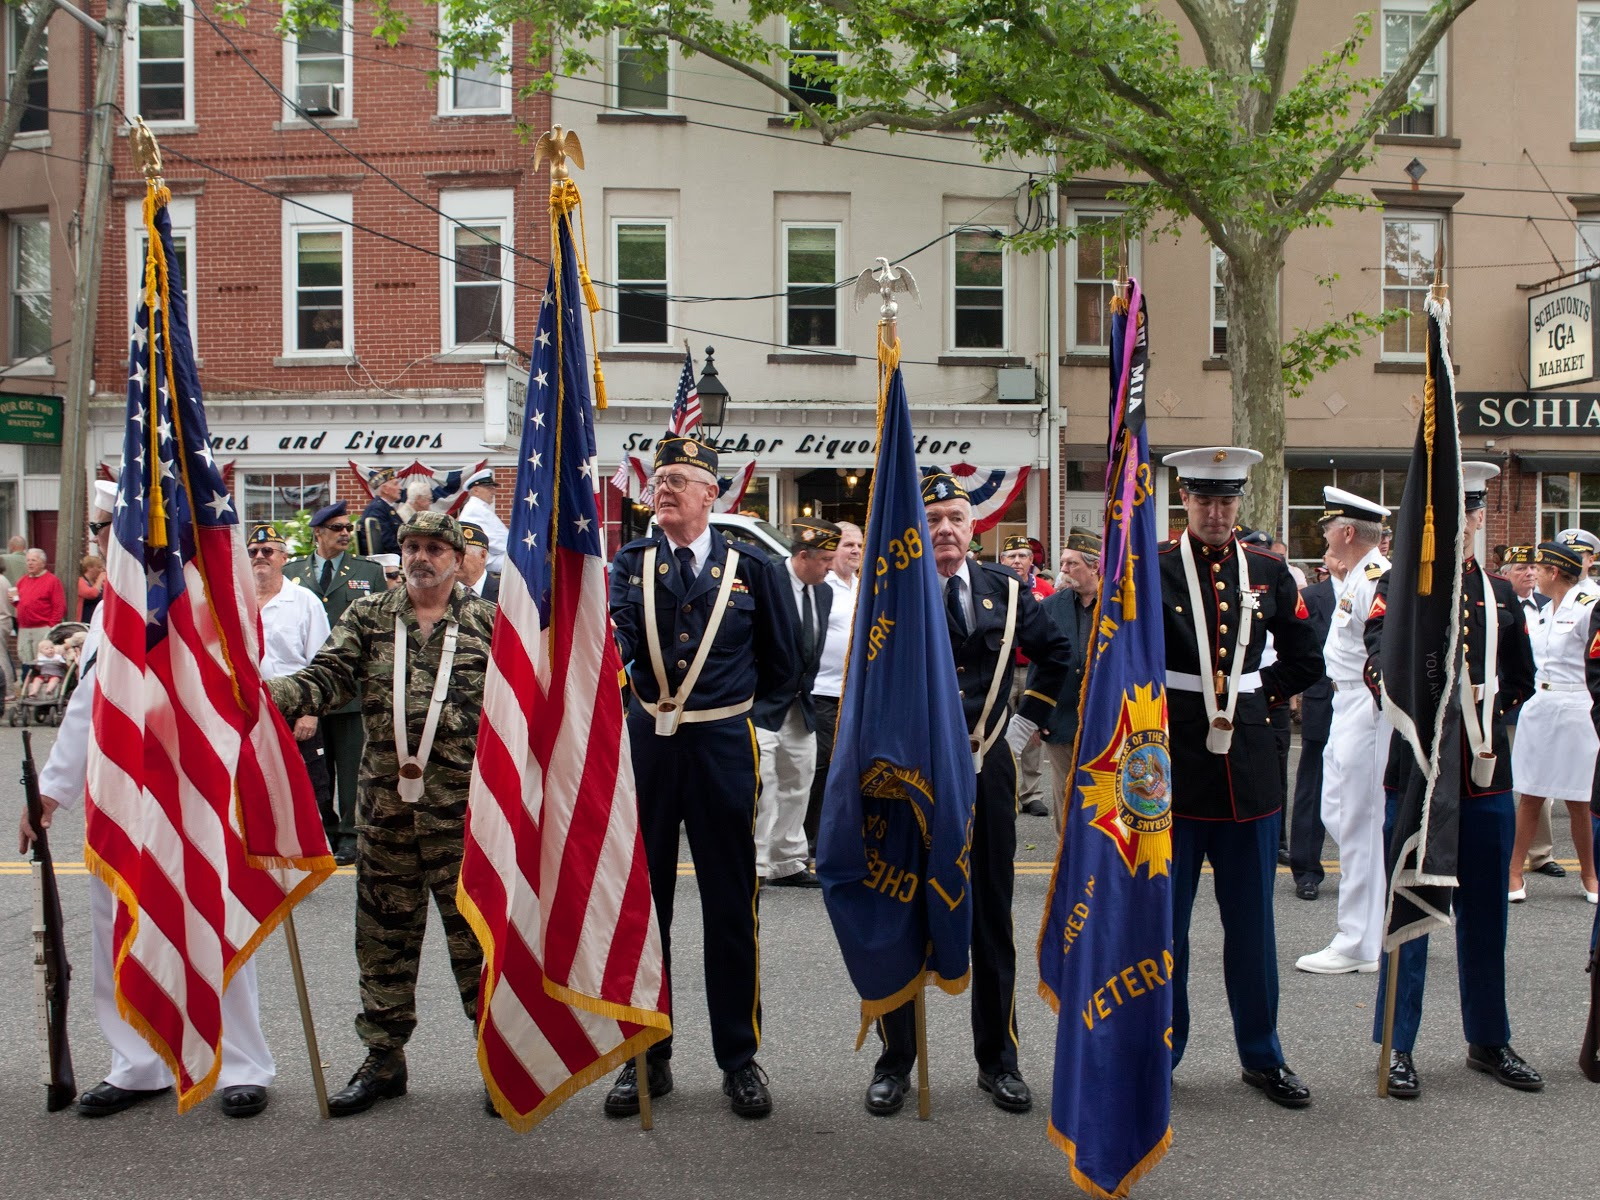 The Best Memorial Day Events in New York City